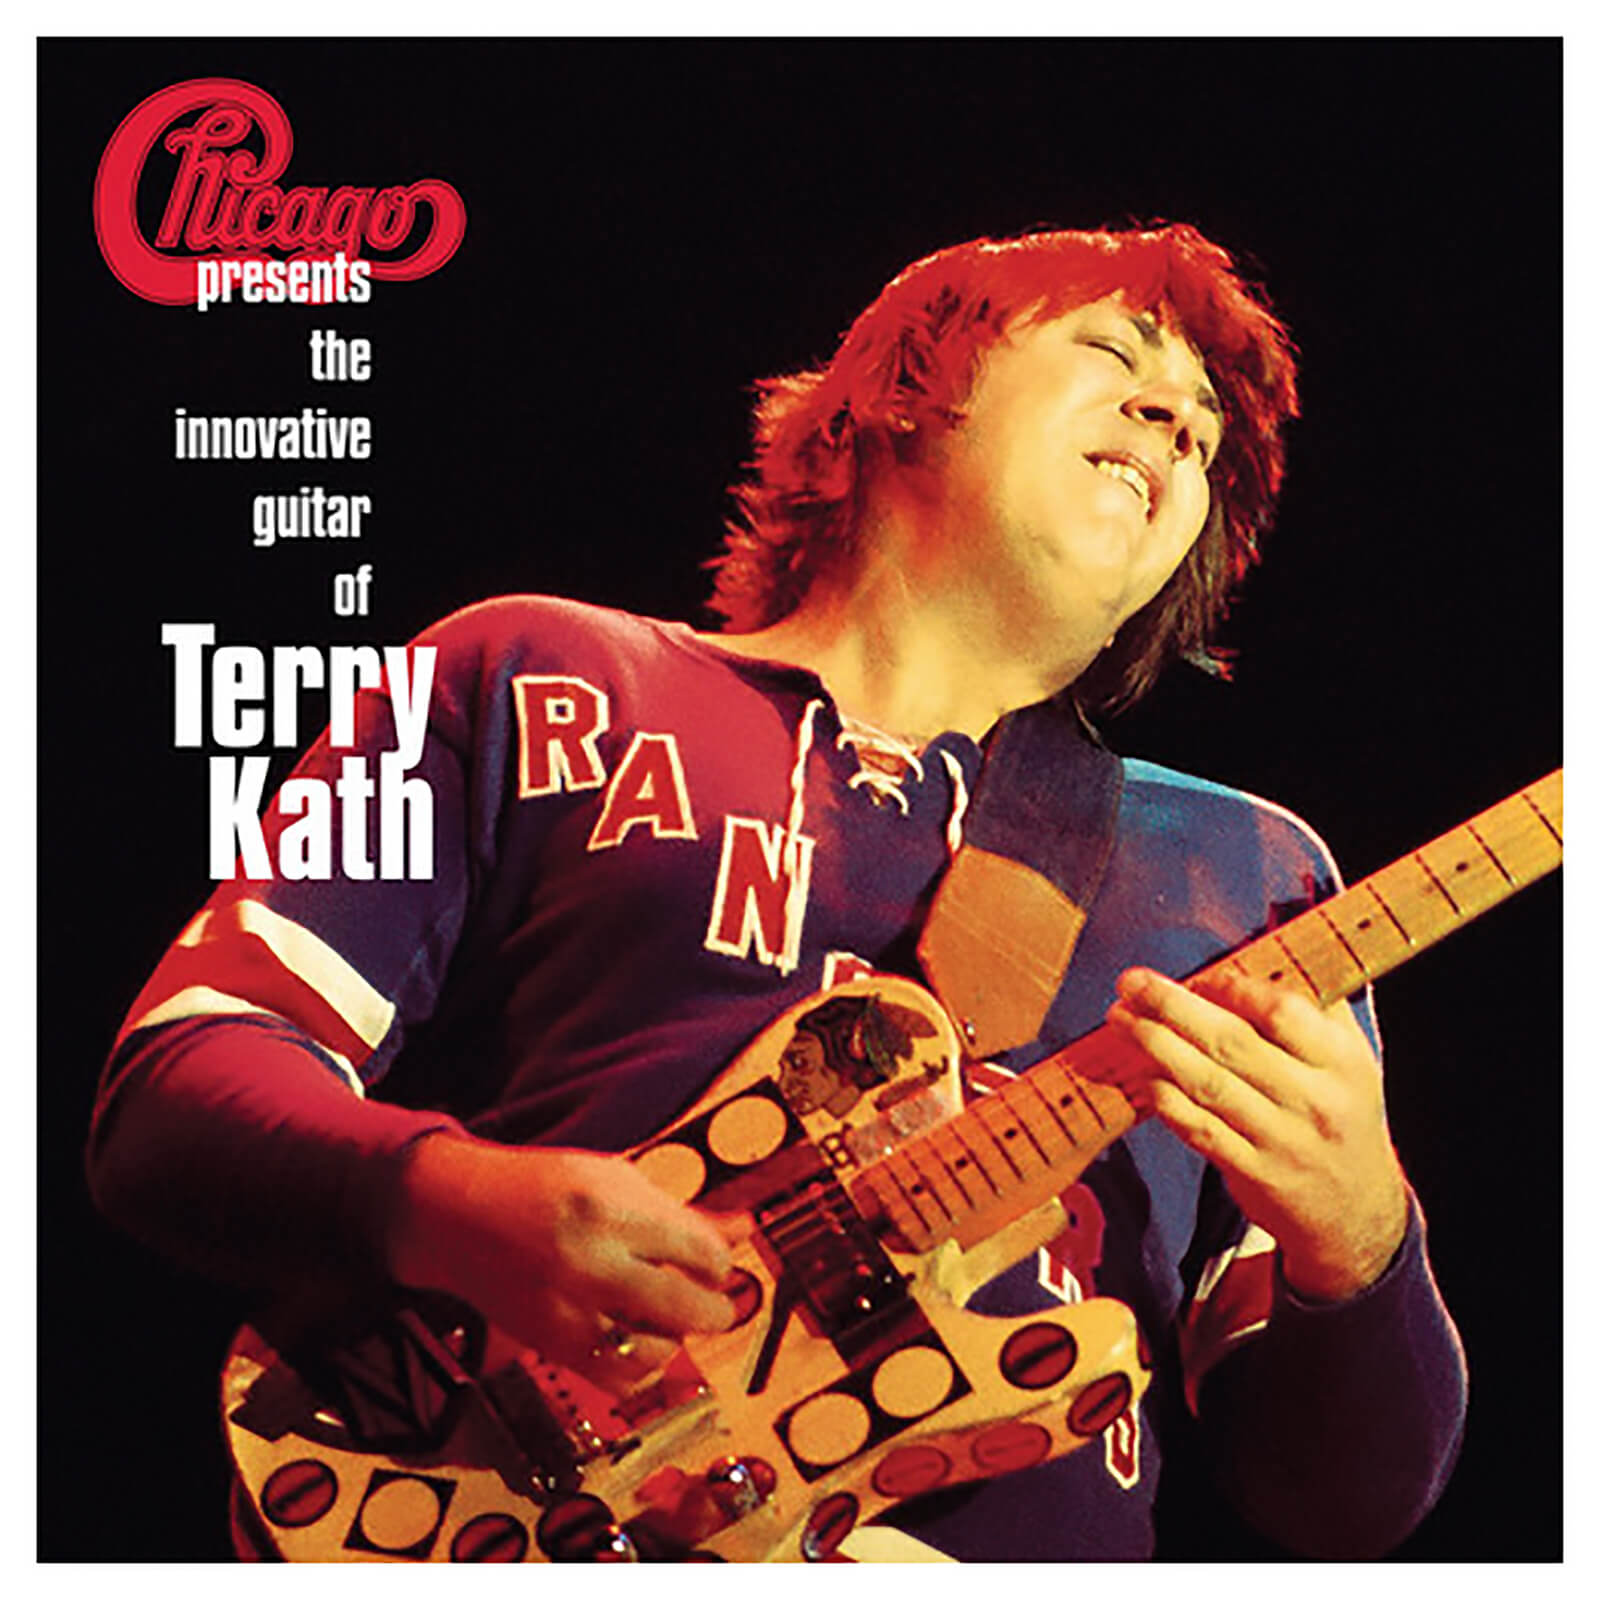 Chicago Presents: Innovative Guitar Of Terry Kath - Vinyl